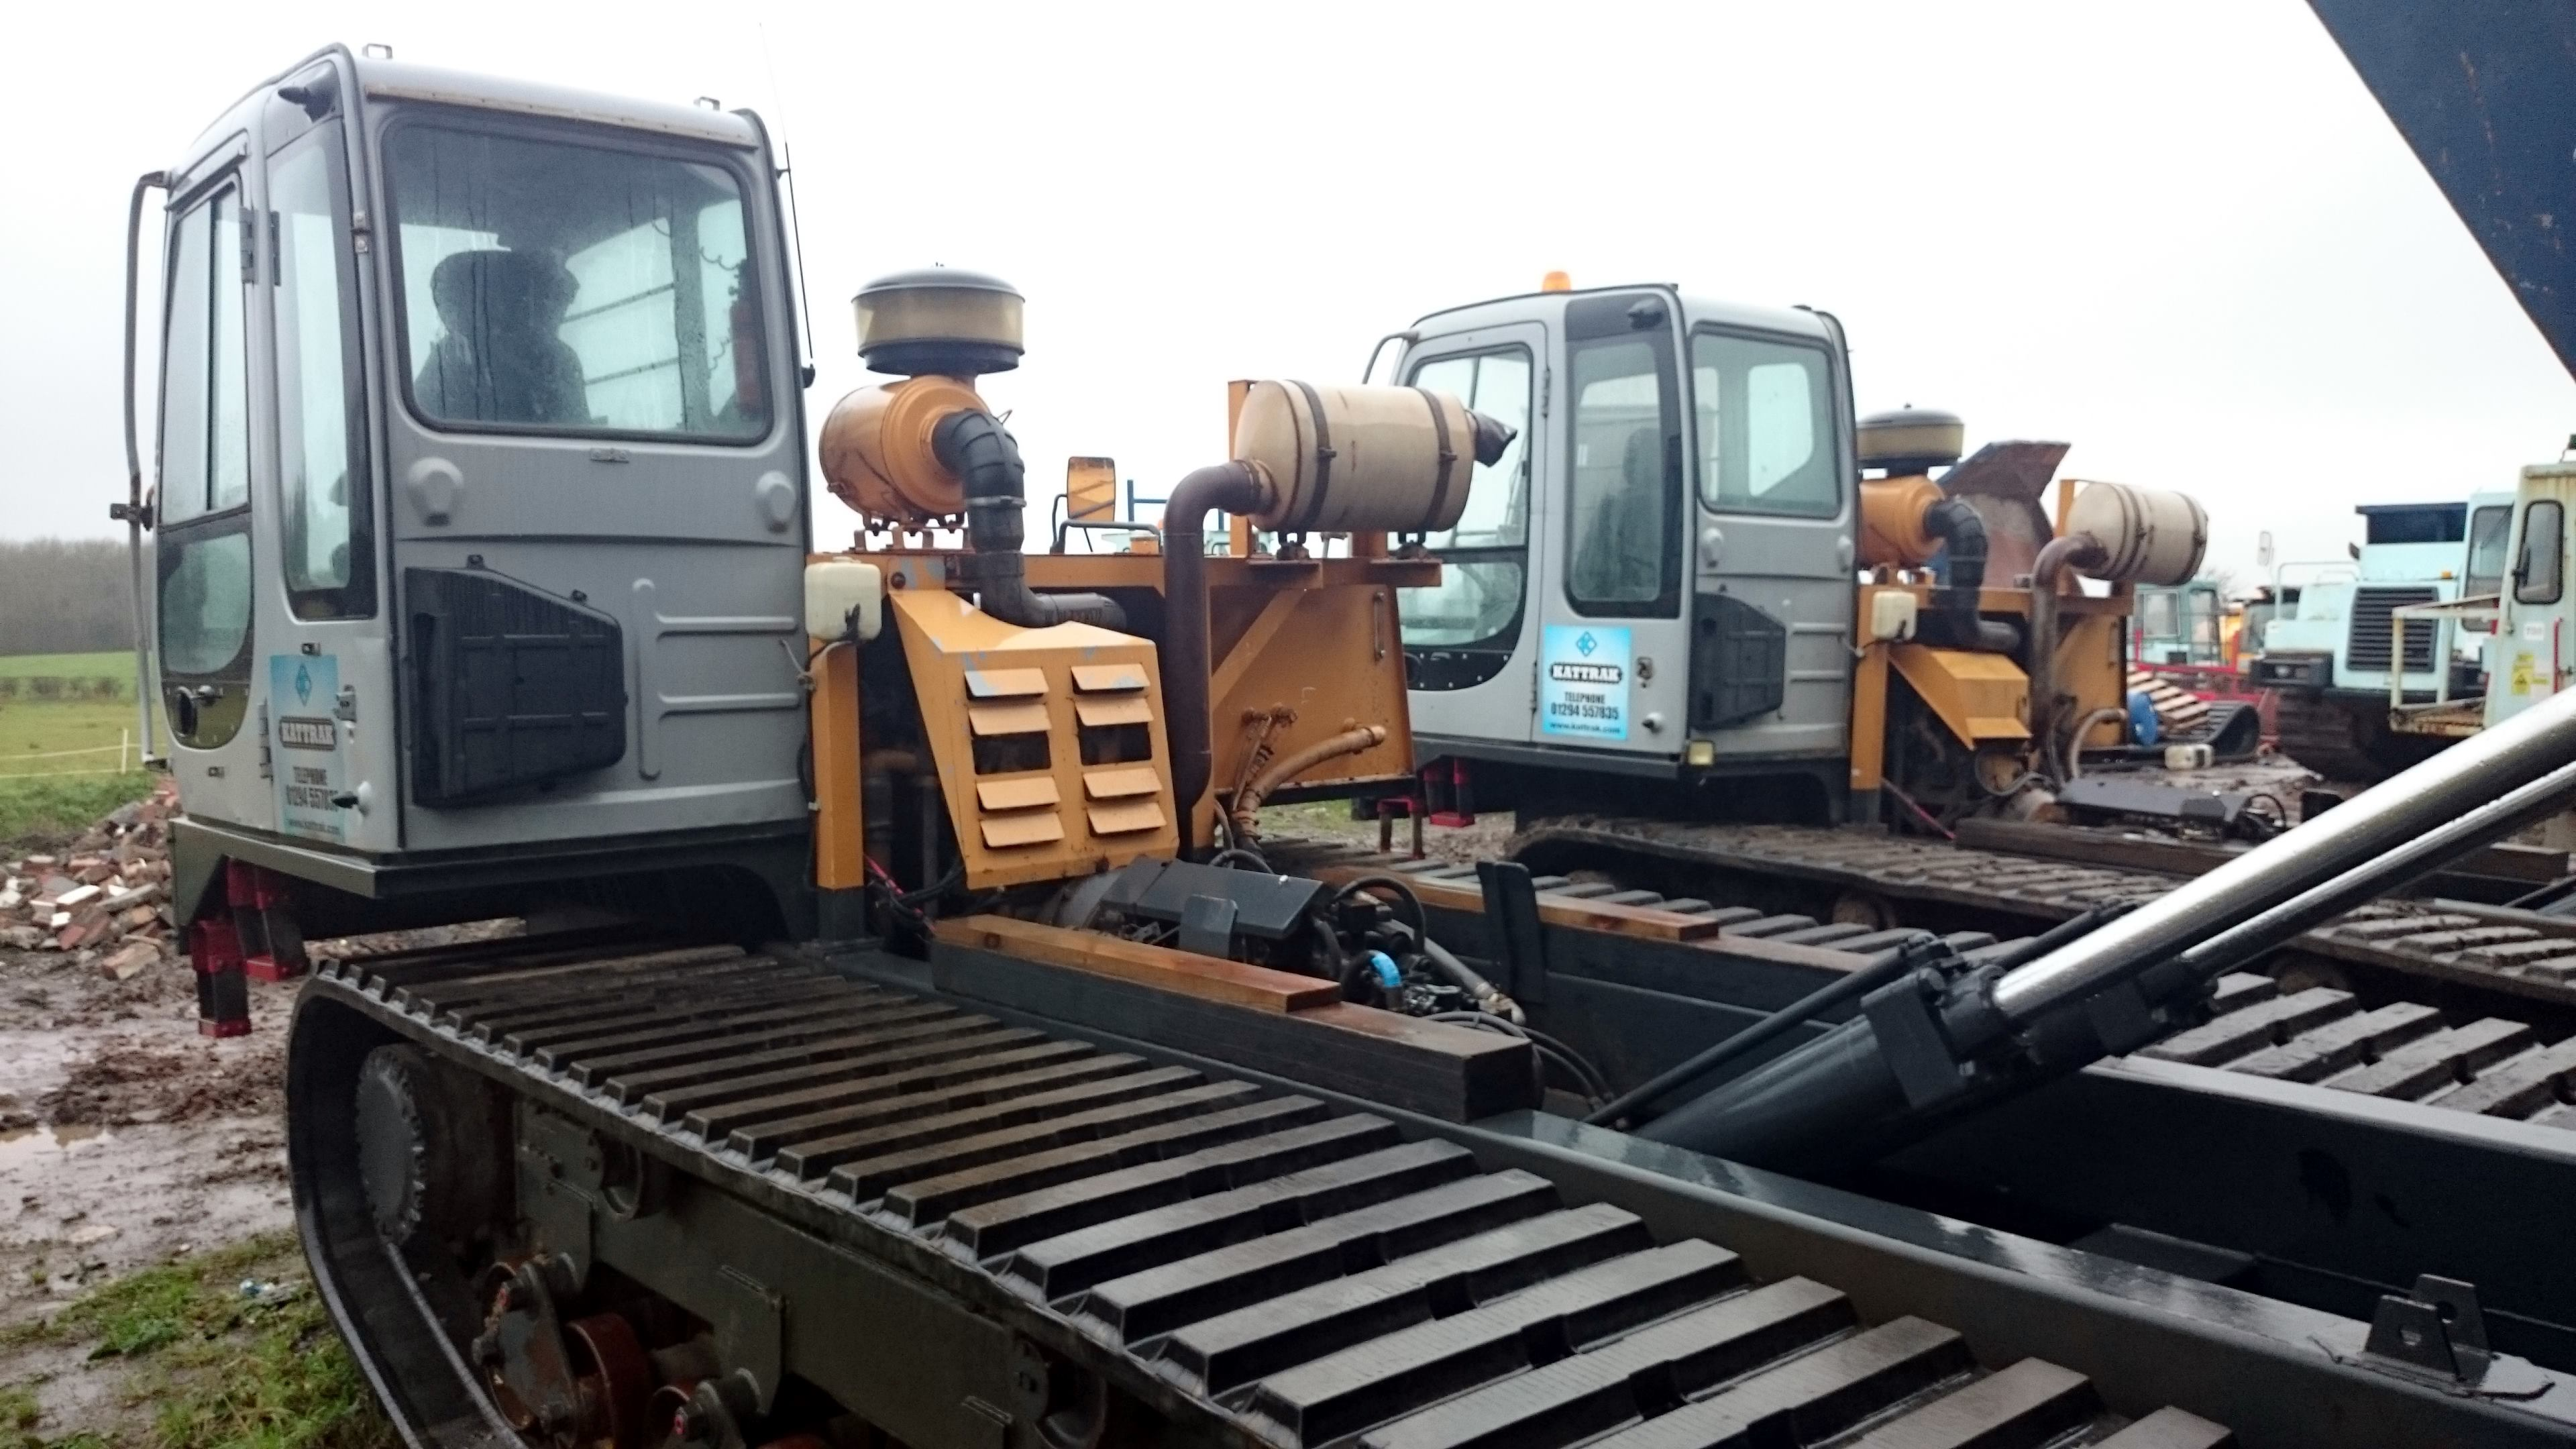 MST2200 VD for hire or sale